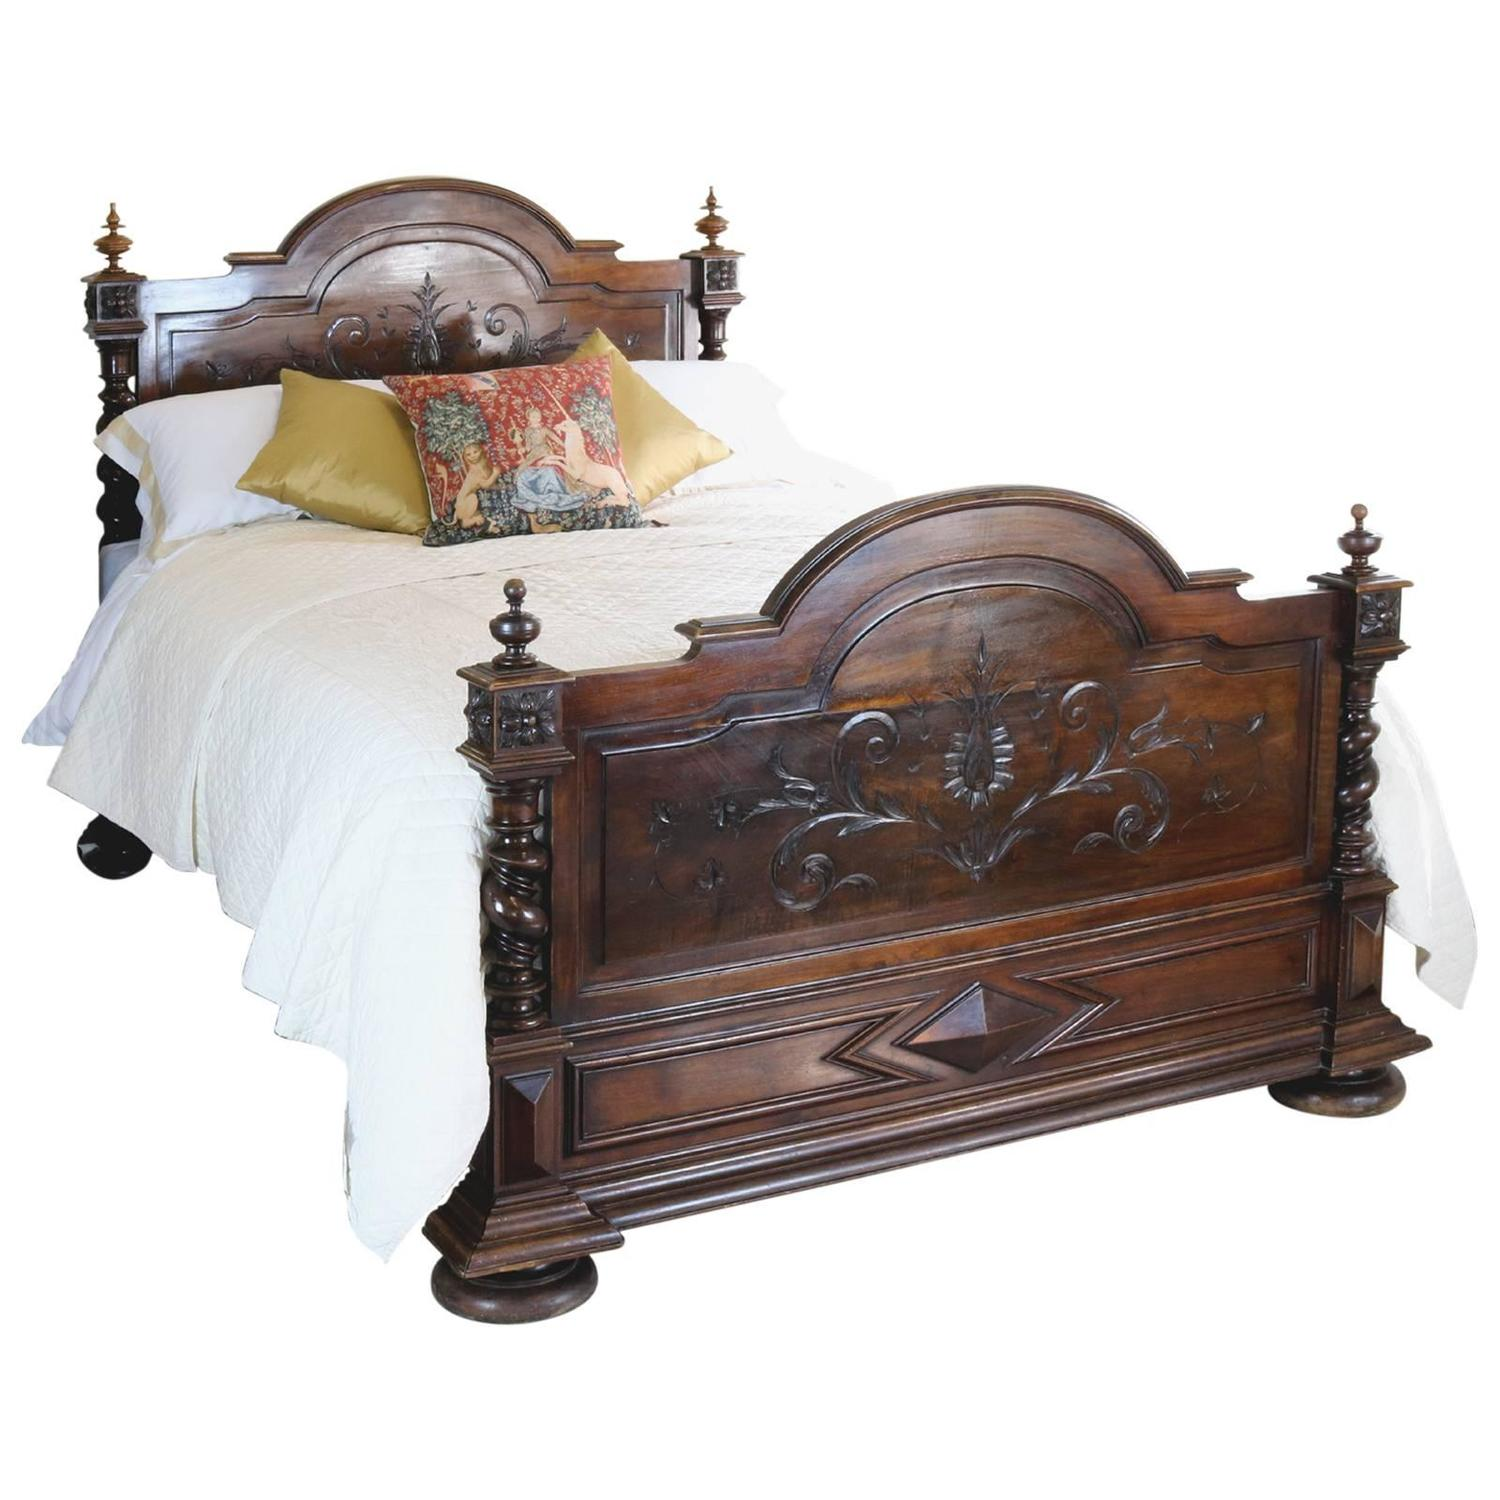 French Chateau Bed In Walnut For Sale At 1stdibs